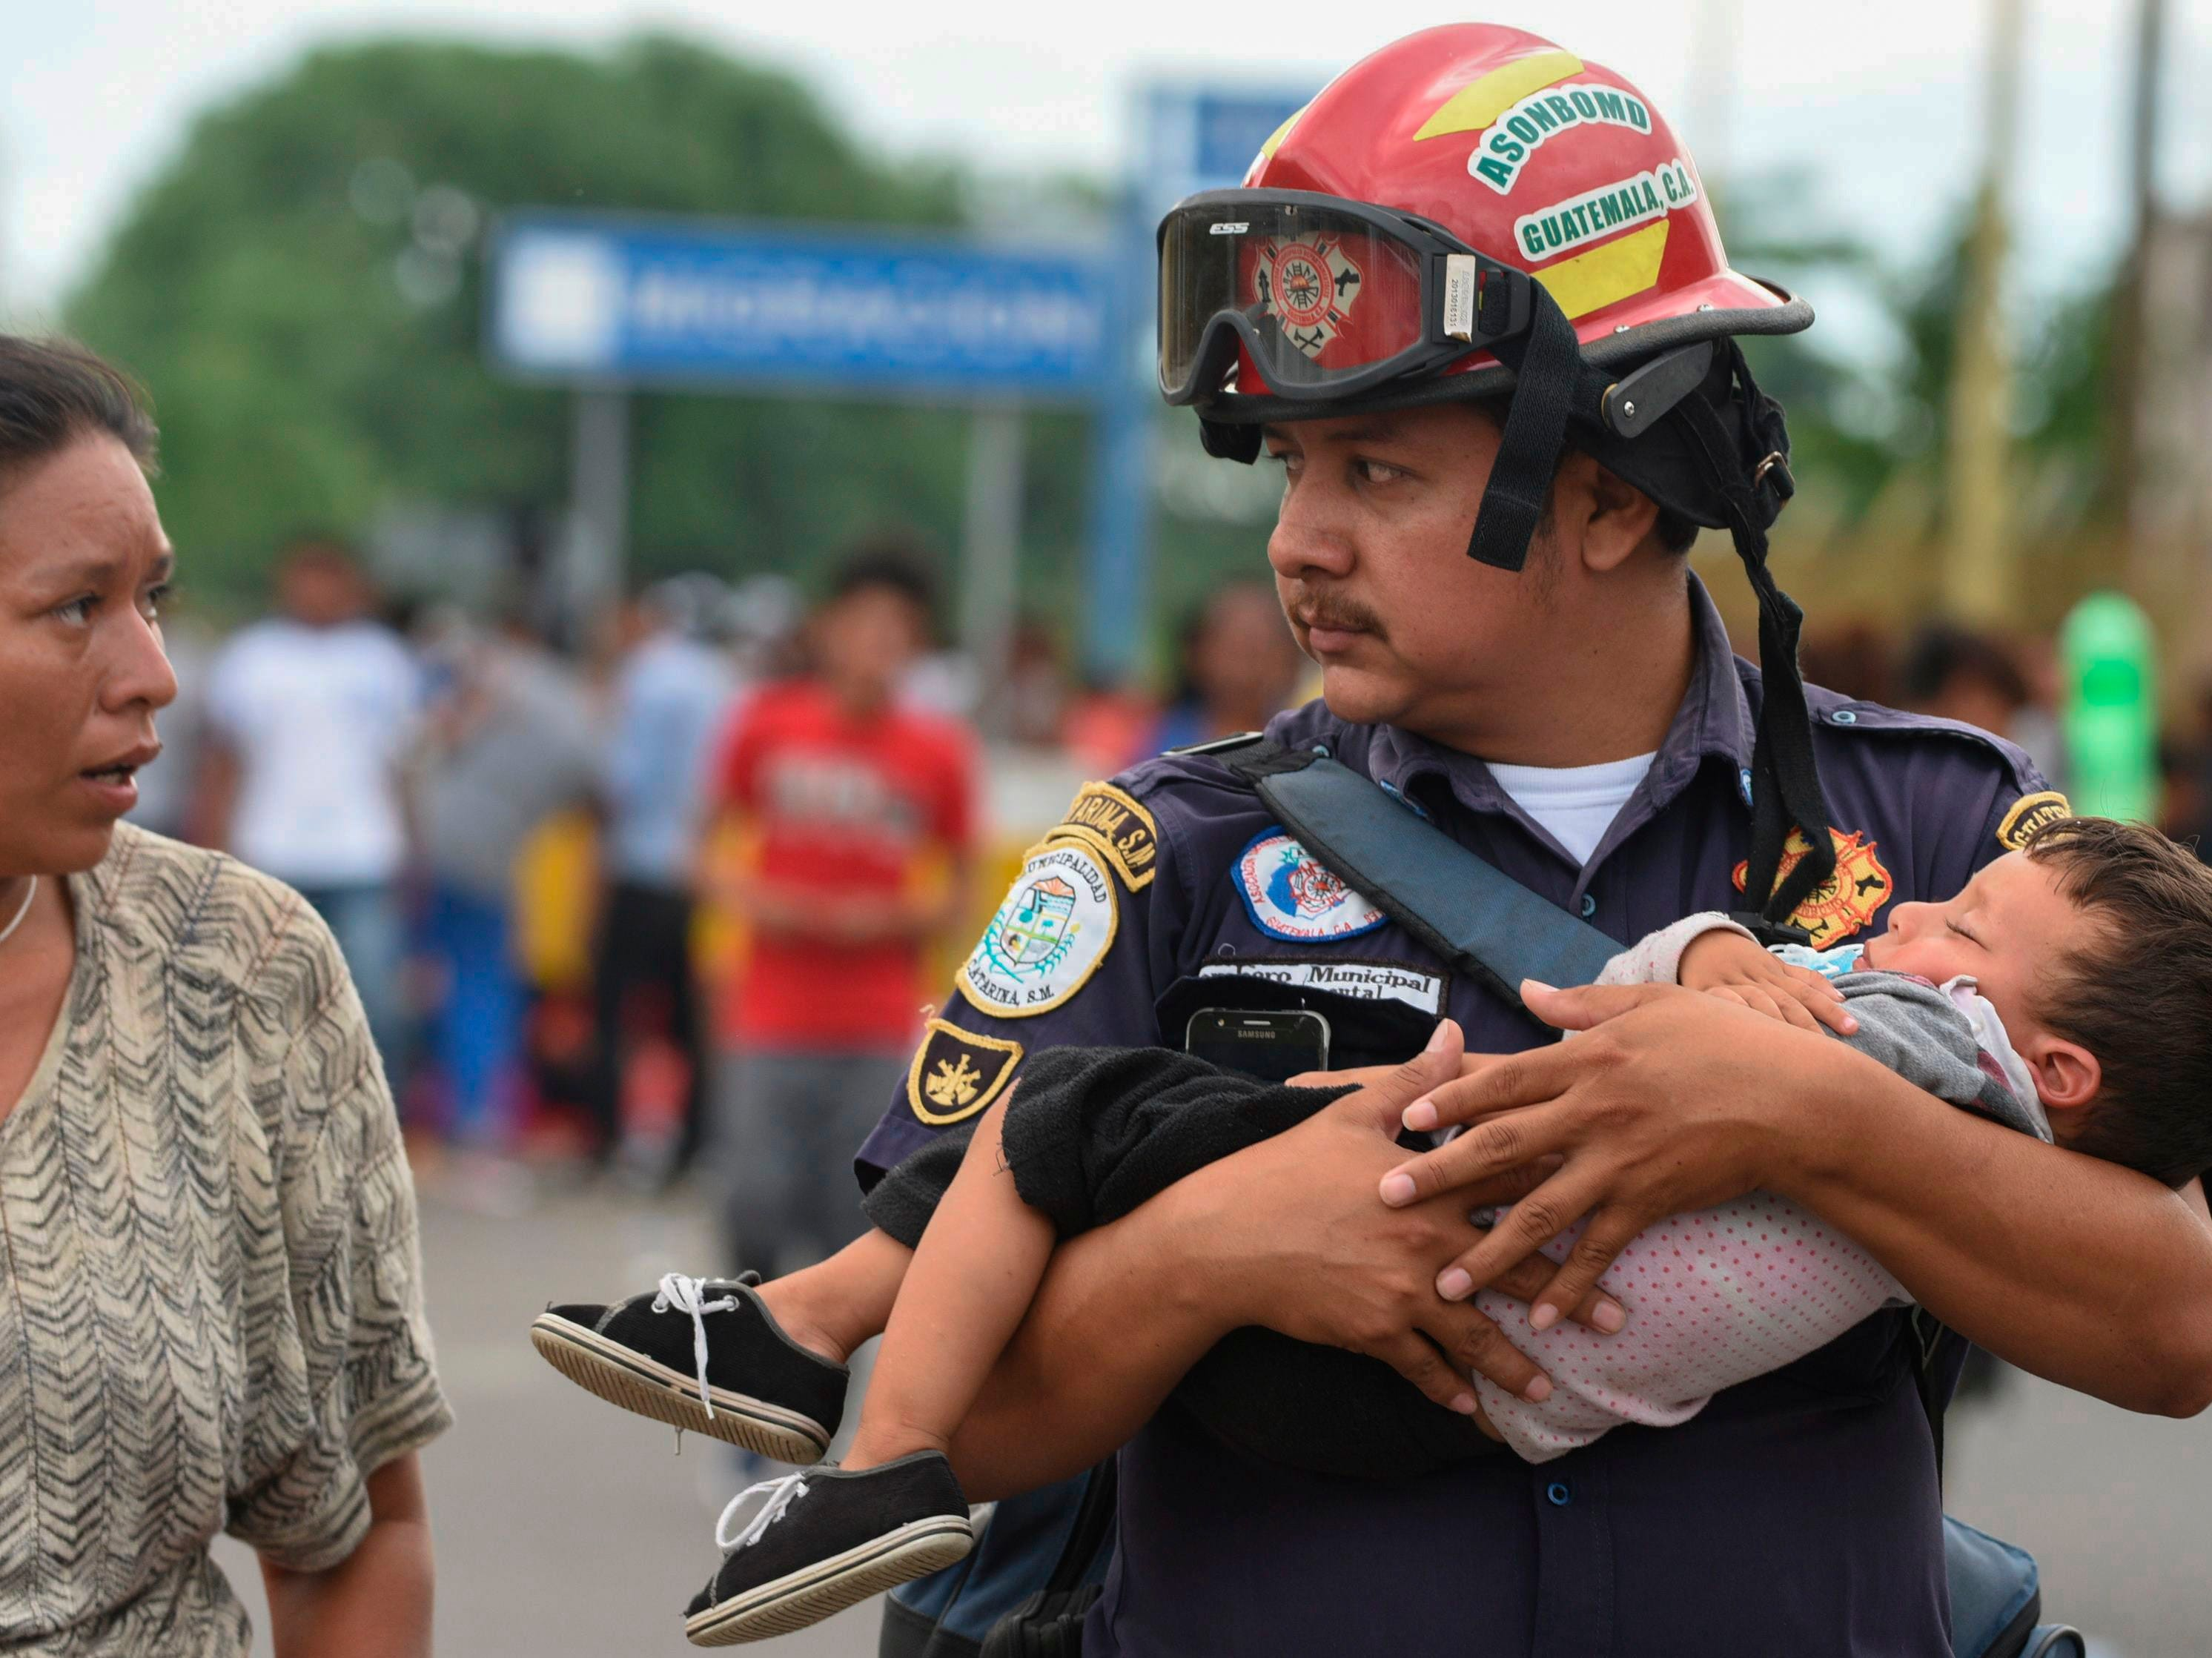 A Guatemalan firefighter carries an ailing baby, as an Honduran migrant caravan heading to the US, reaches the Guatemala-Mexico international bridge in Tecun Uman, Guatemala on Oct. 19, 2018.